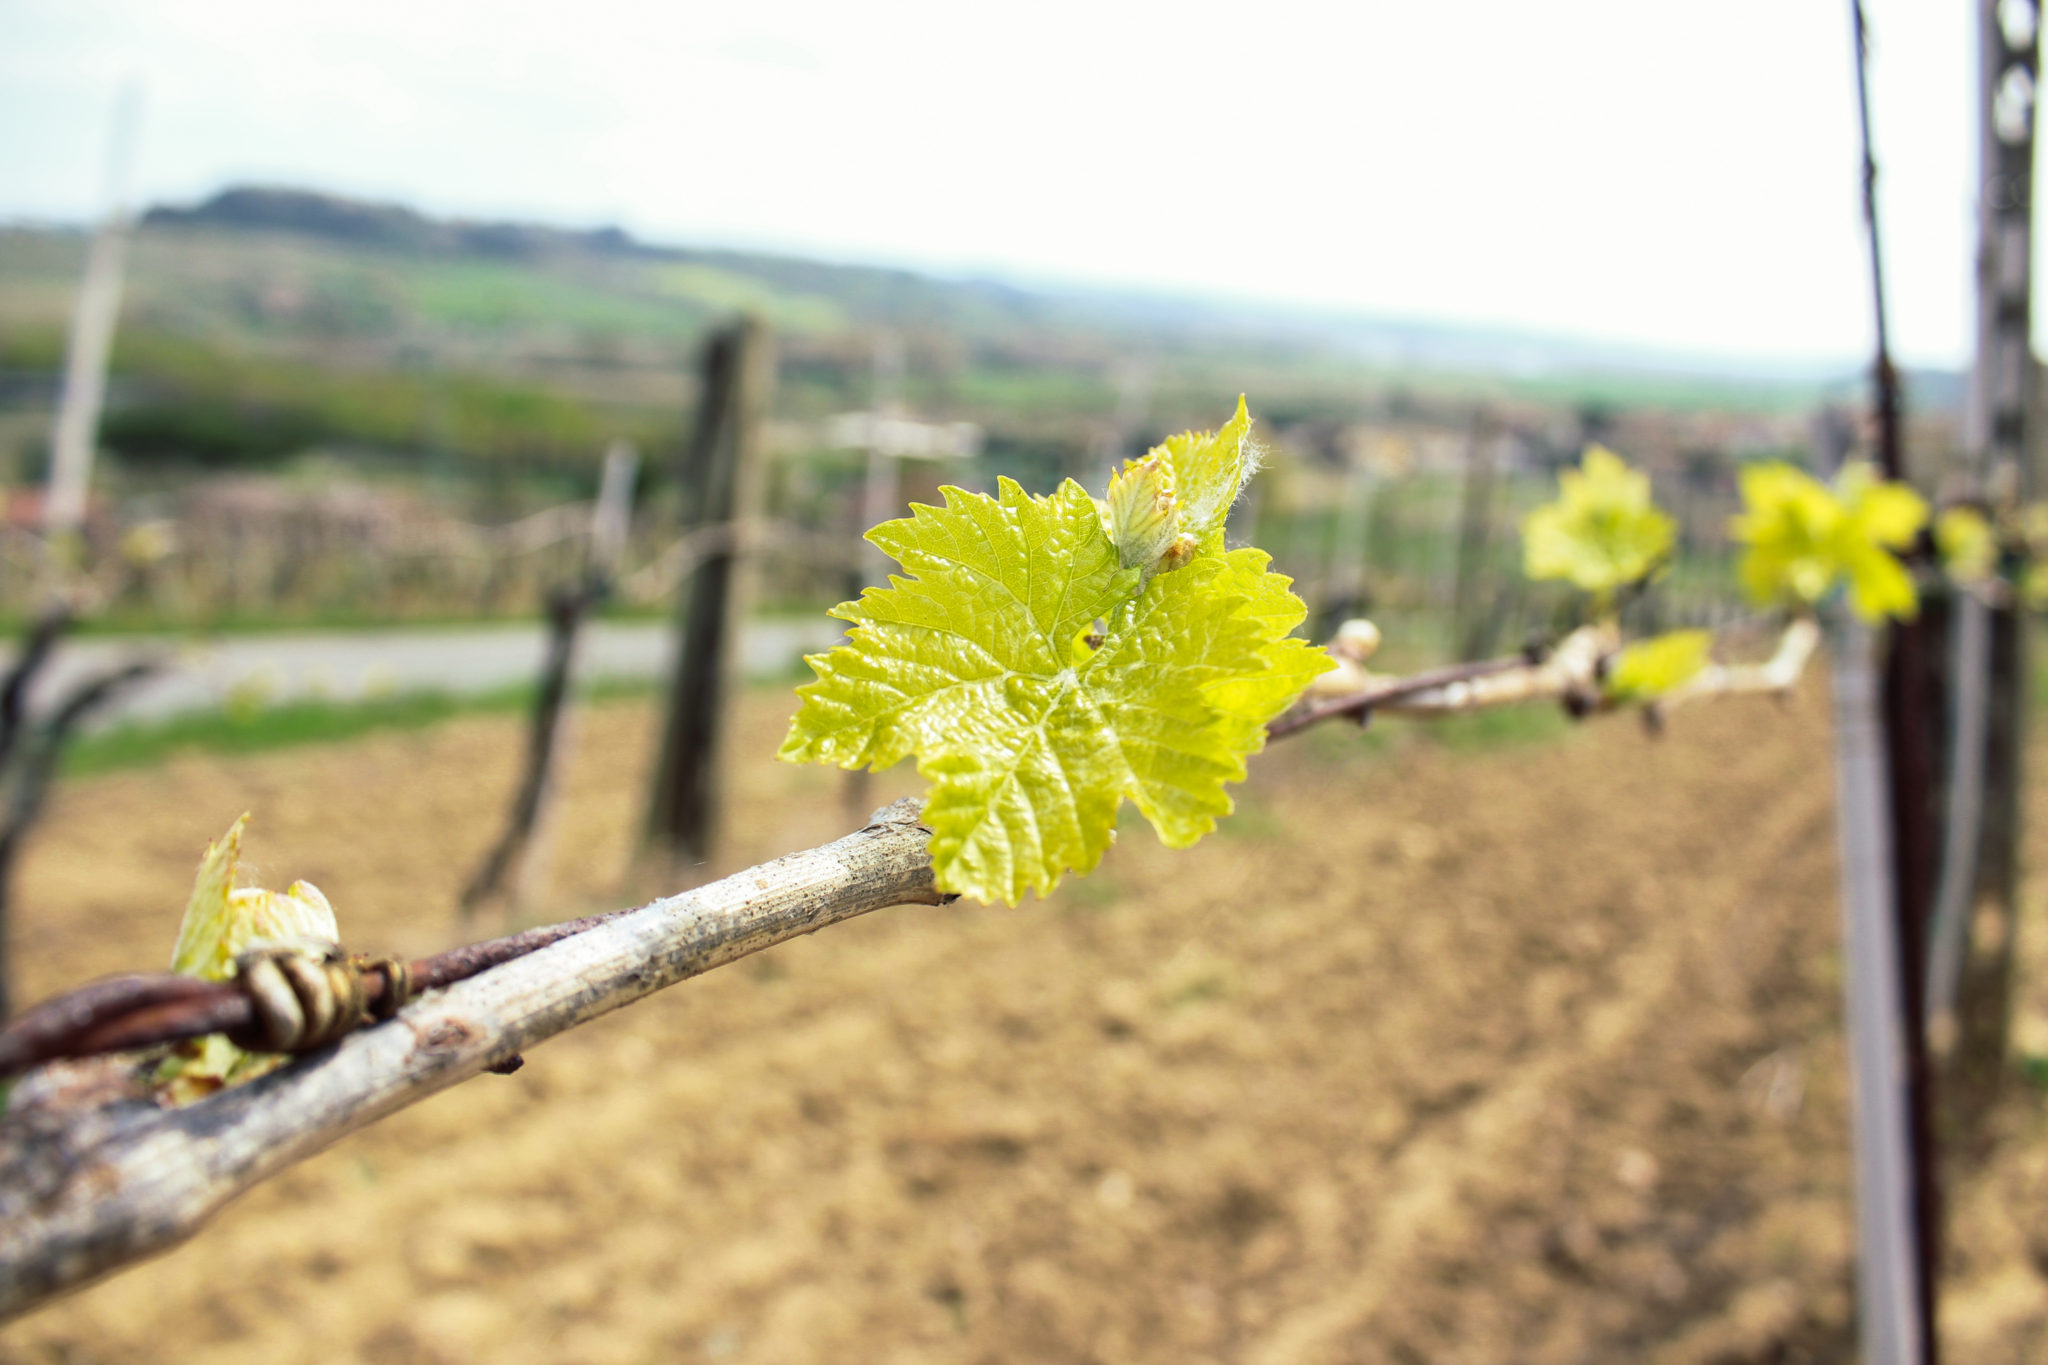 The budbreak through the rows of Torciano vineyards